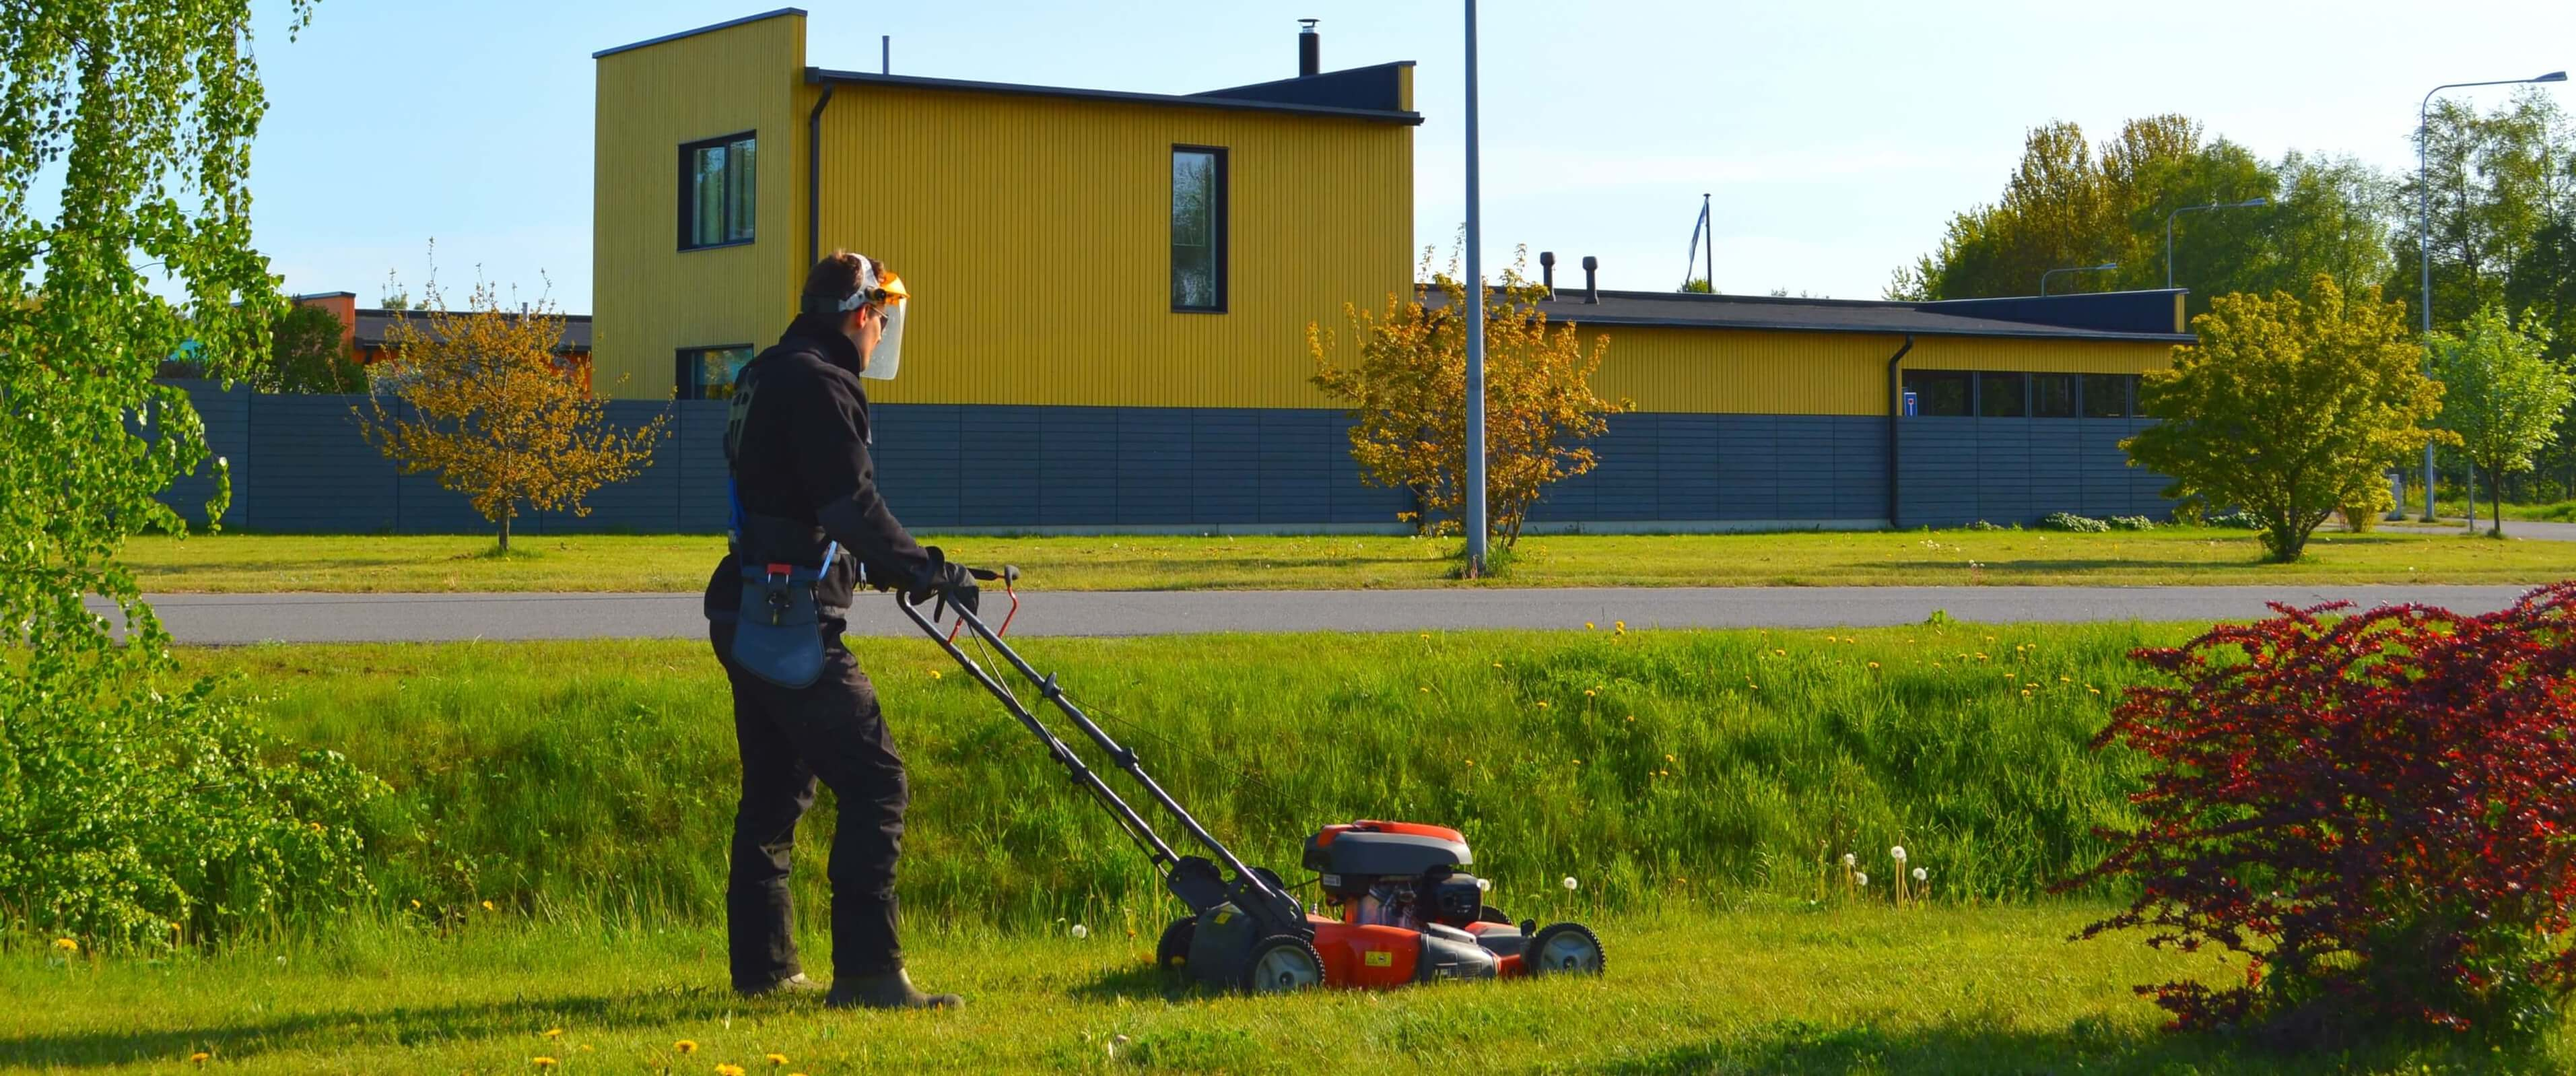 Landscaping in the autumn season: maintenance of the territory, leaves cleaning and the last lawn mowing  before winter